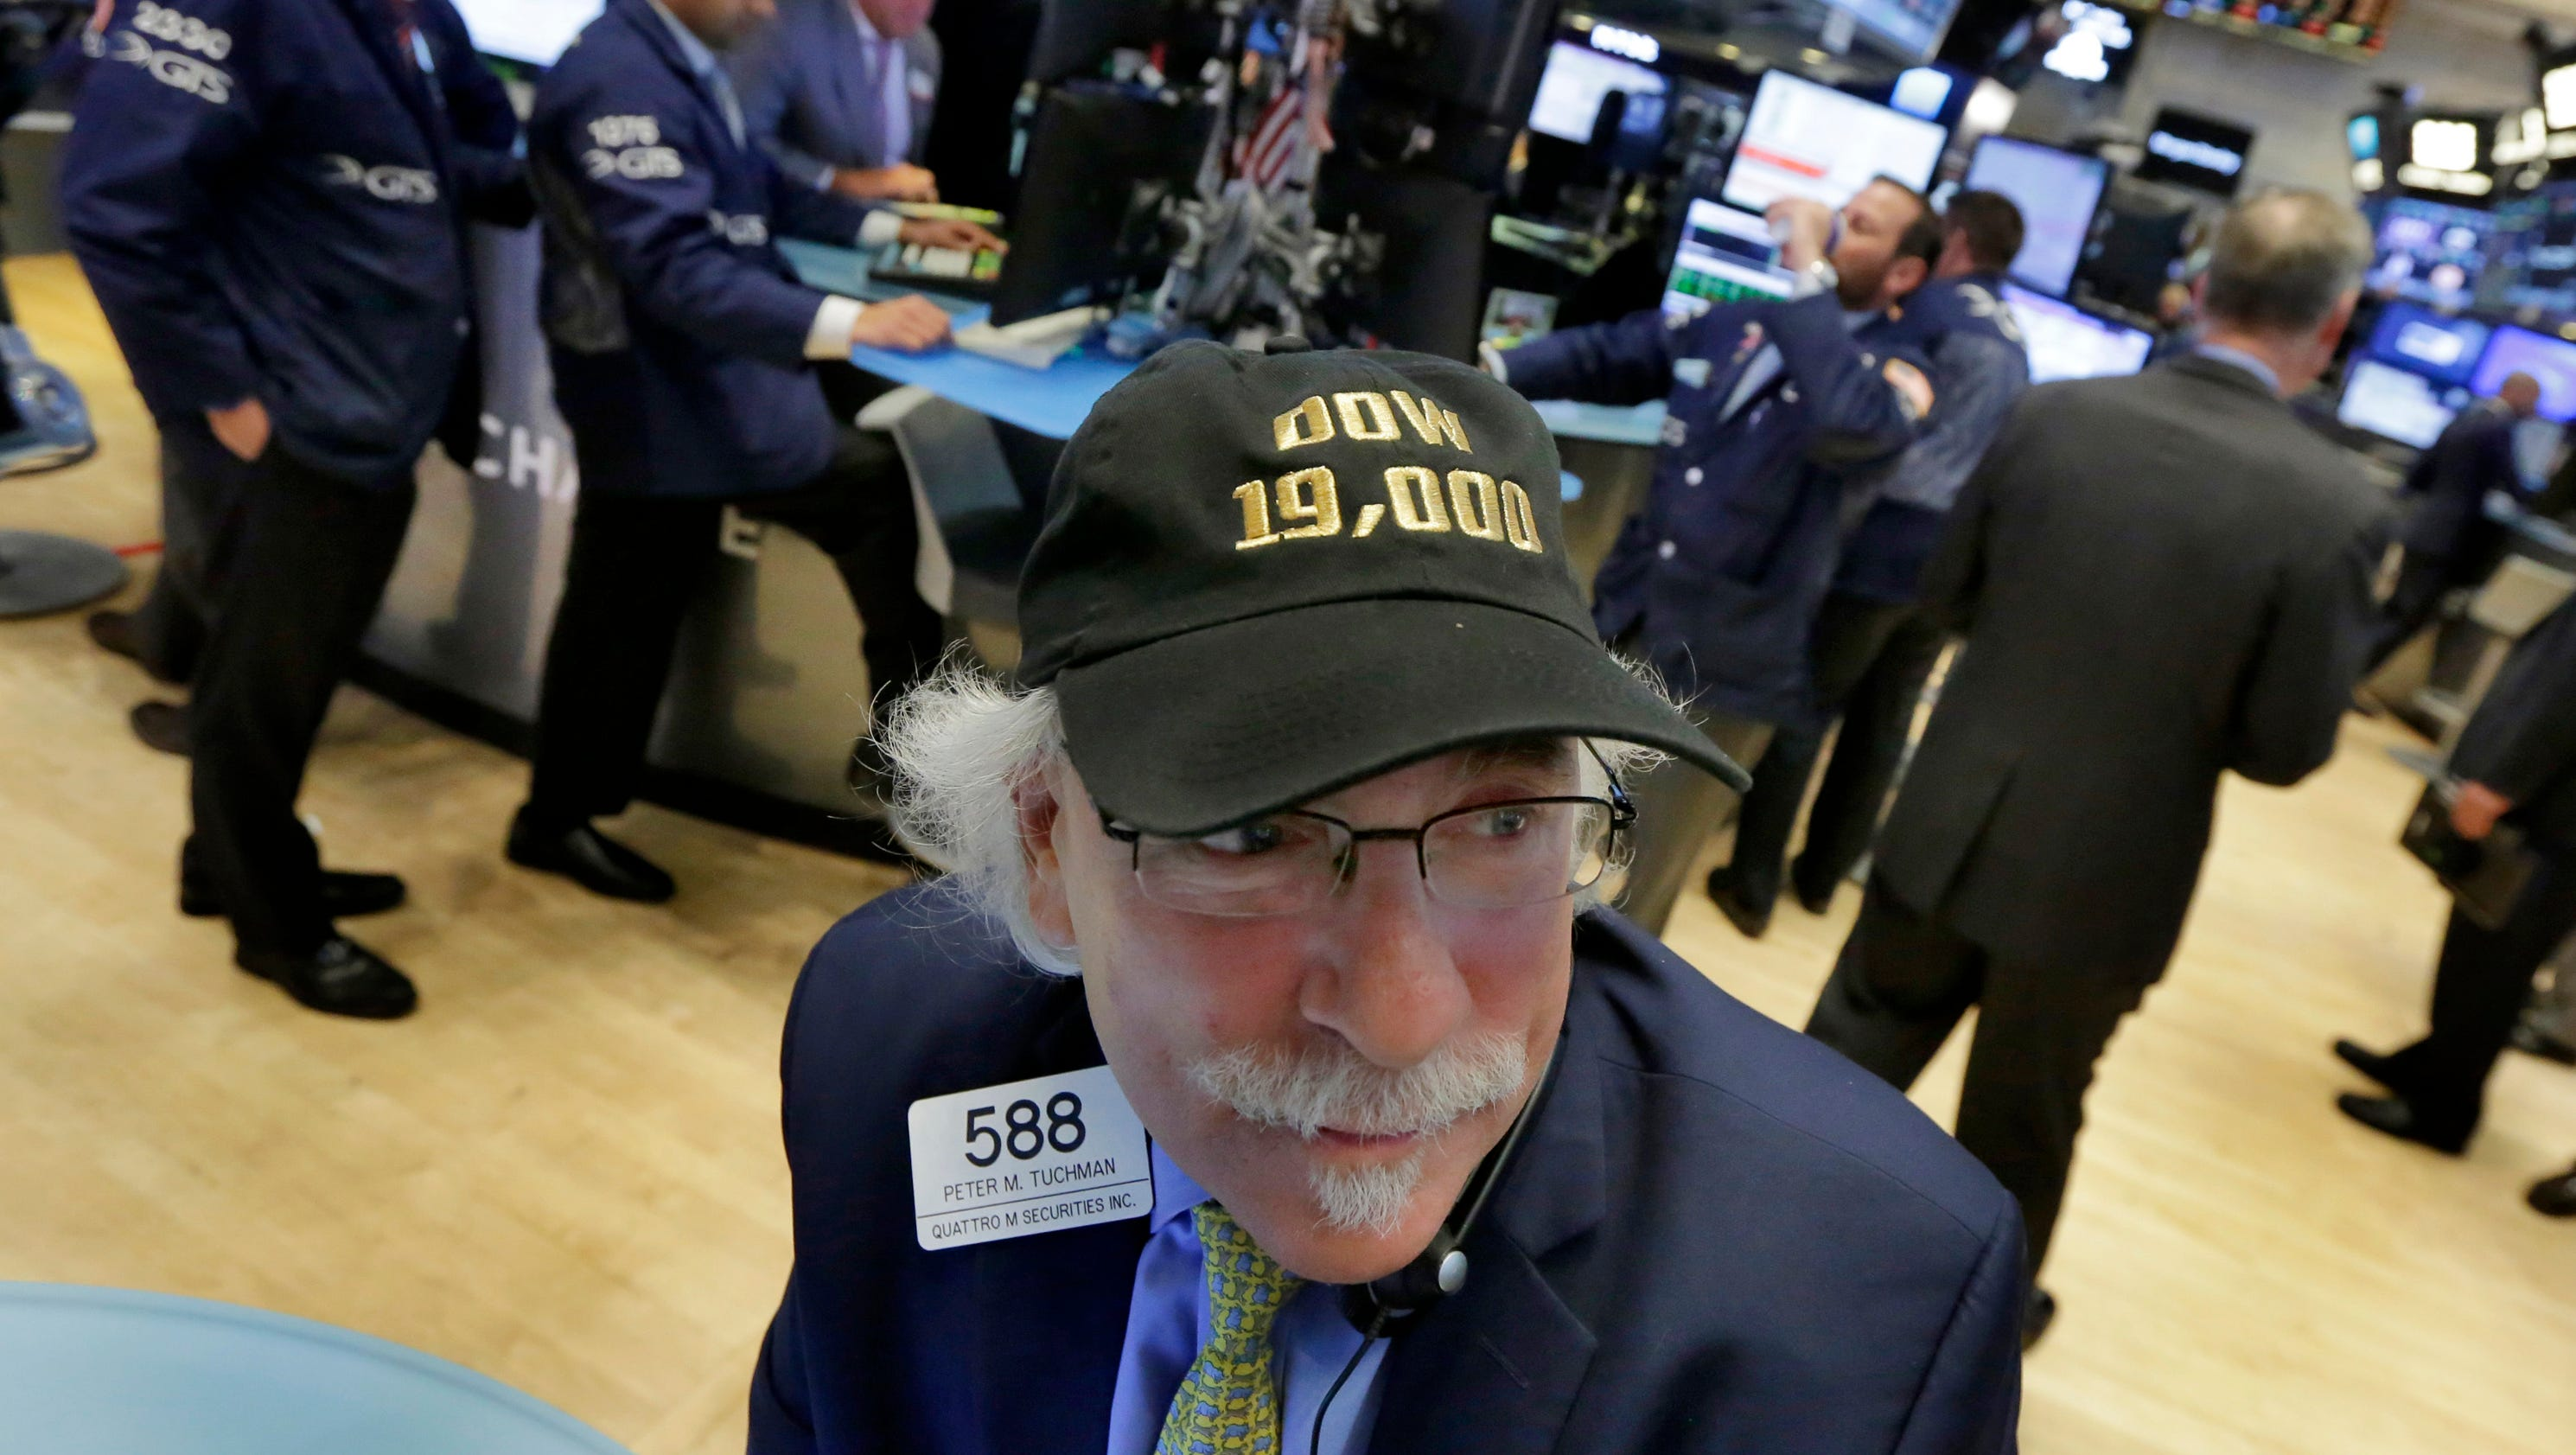 Dow closes above 19,000 for first time in its 120-year history